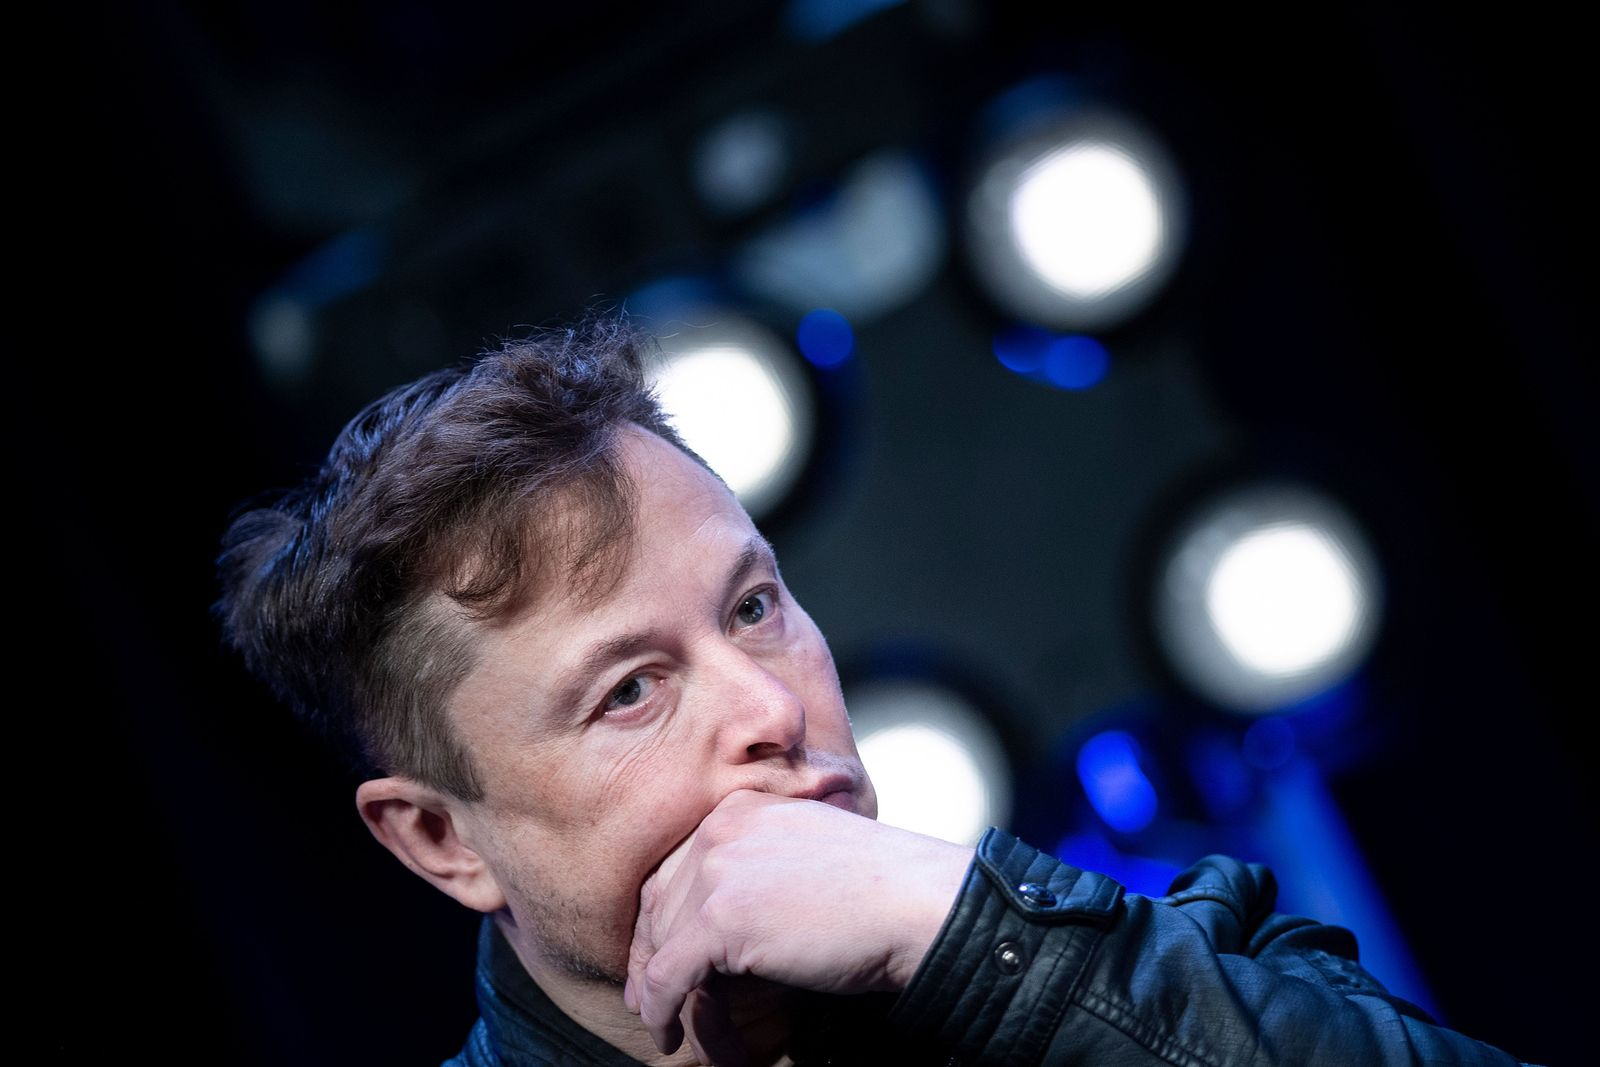 Elon Musk delivers keynote remarks at the Access Intelligence LLC. 2020 Satellite Conference and Exhibition